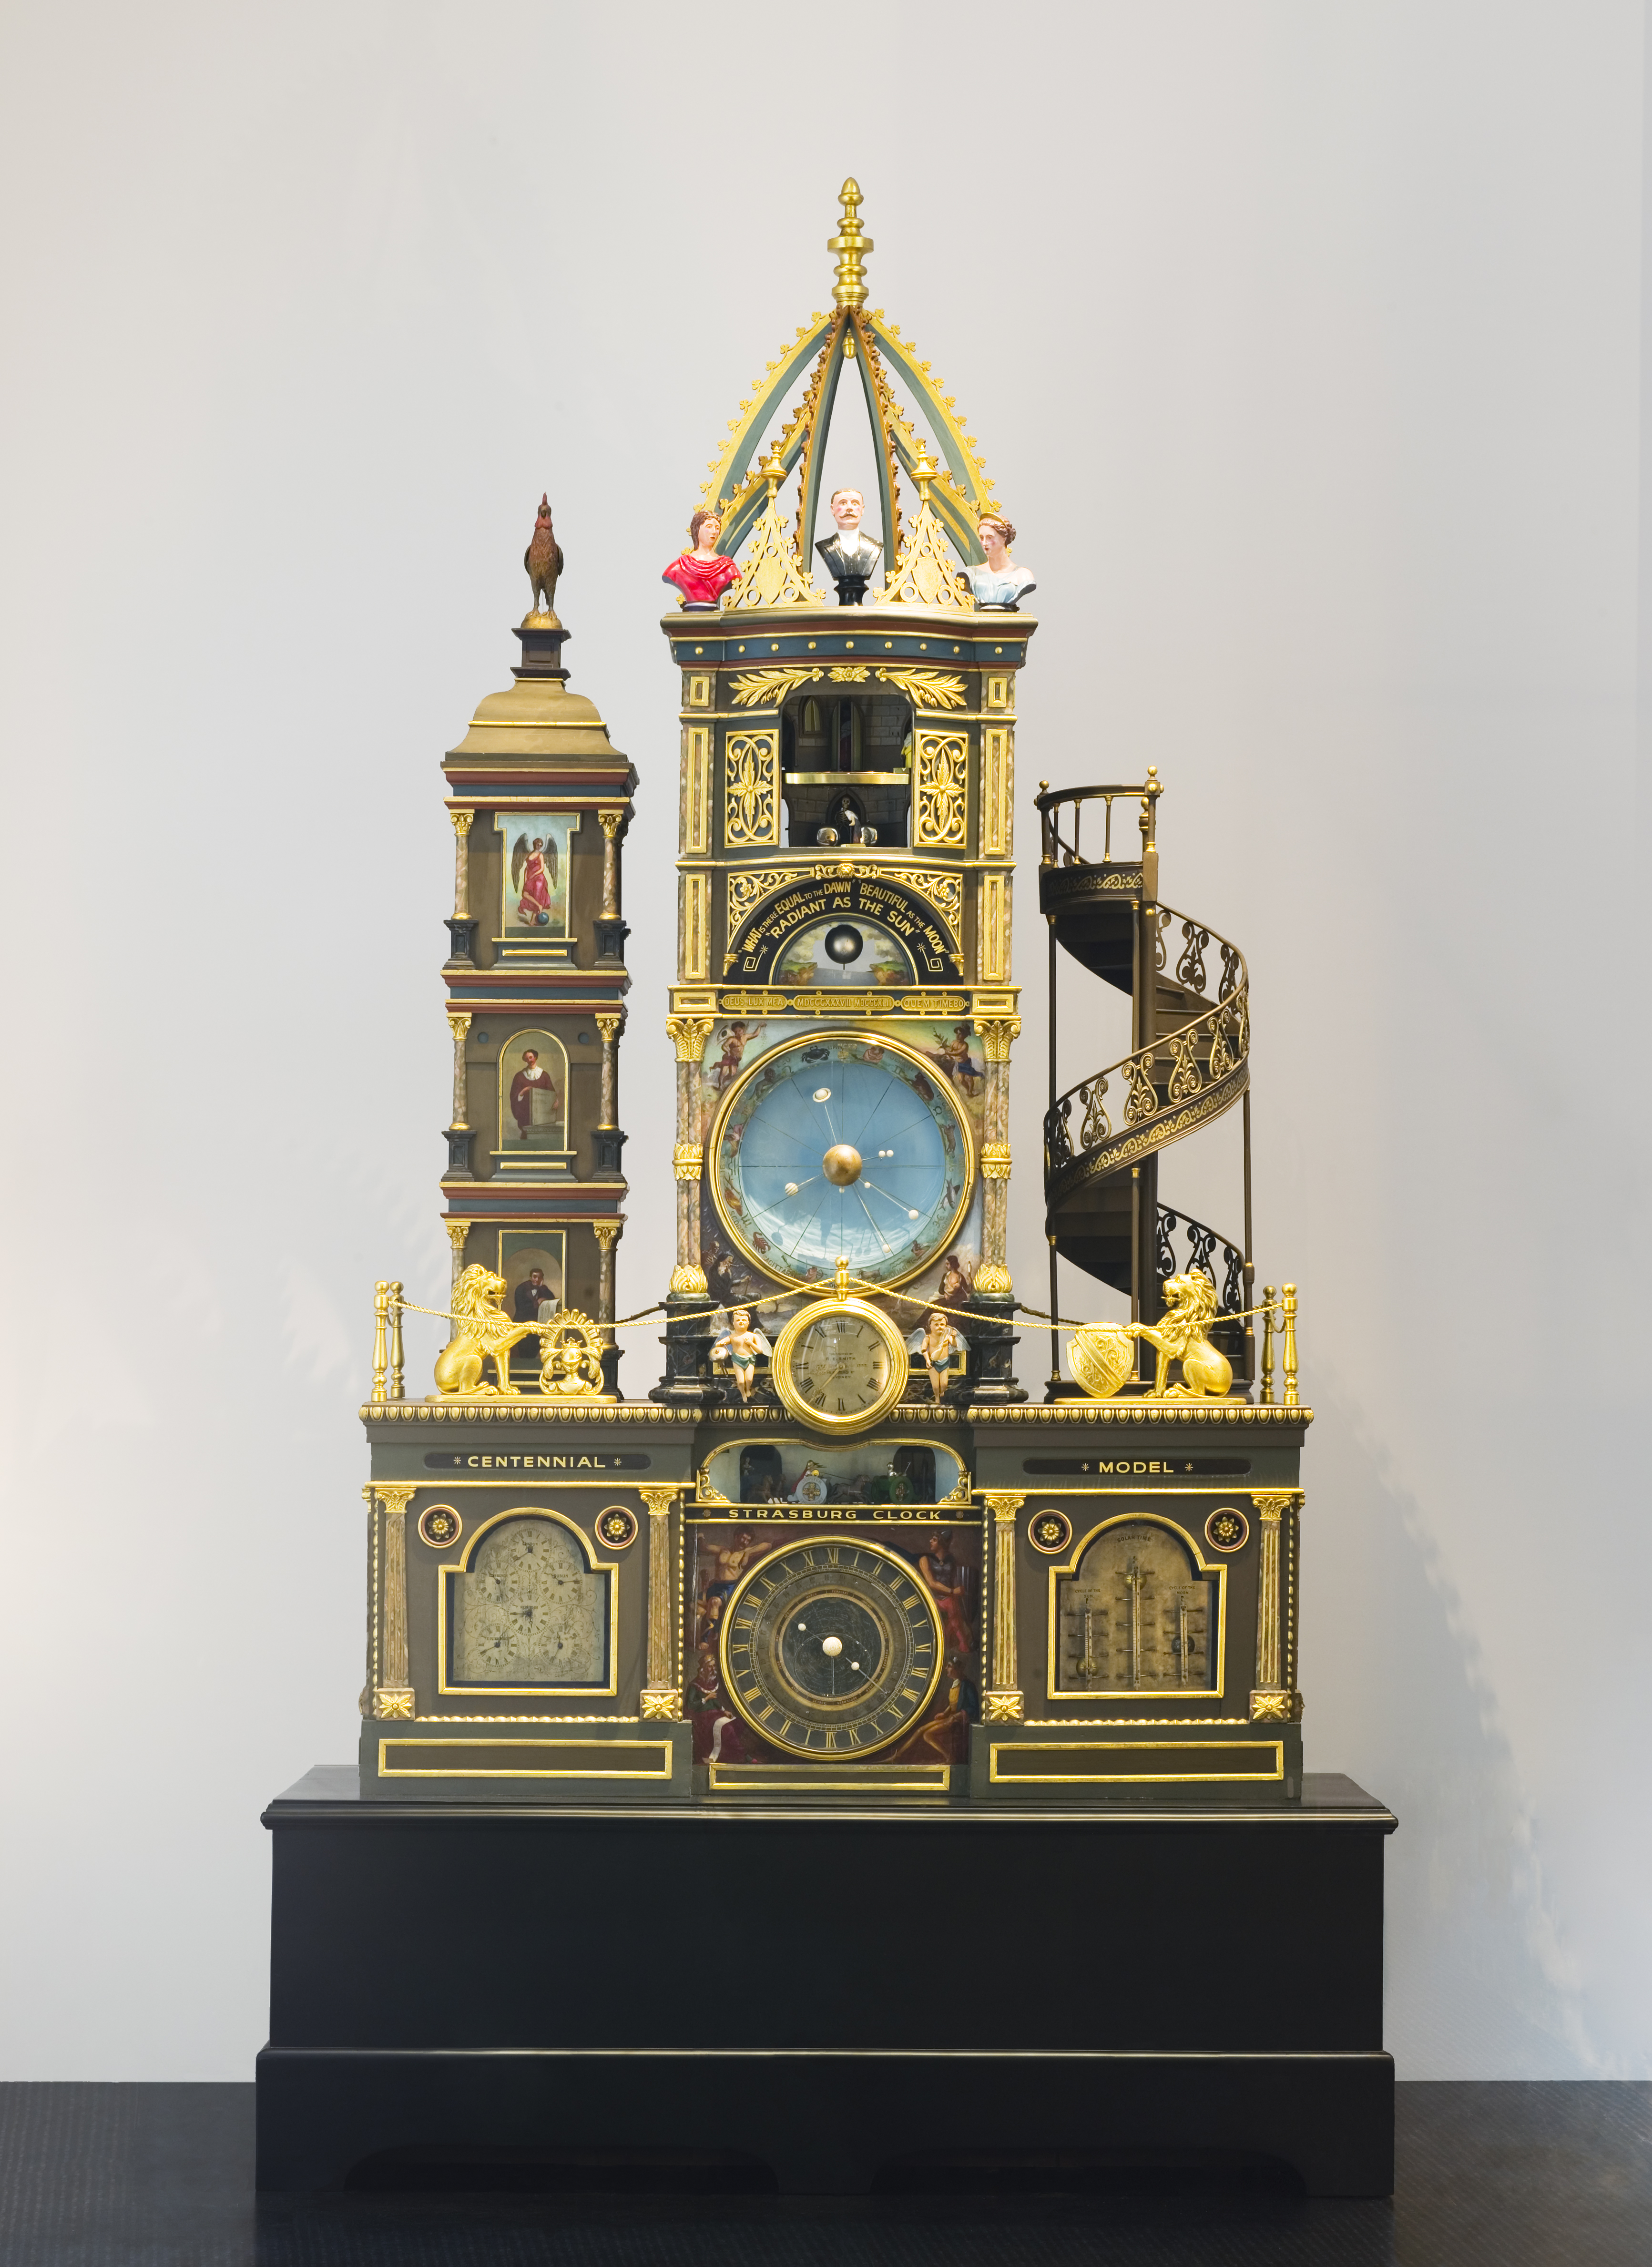 A four-metre high ornate gold clock with a tall centre tower with a procession of the 12 Apostles inside an alcove, a shorter tower on the left and a spiral staircase on the right.